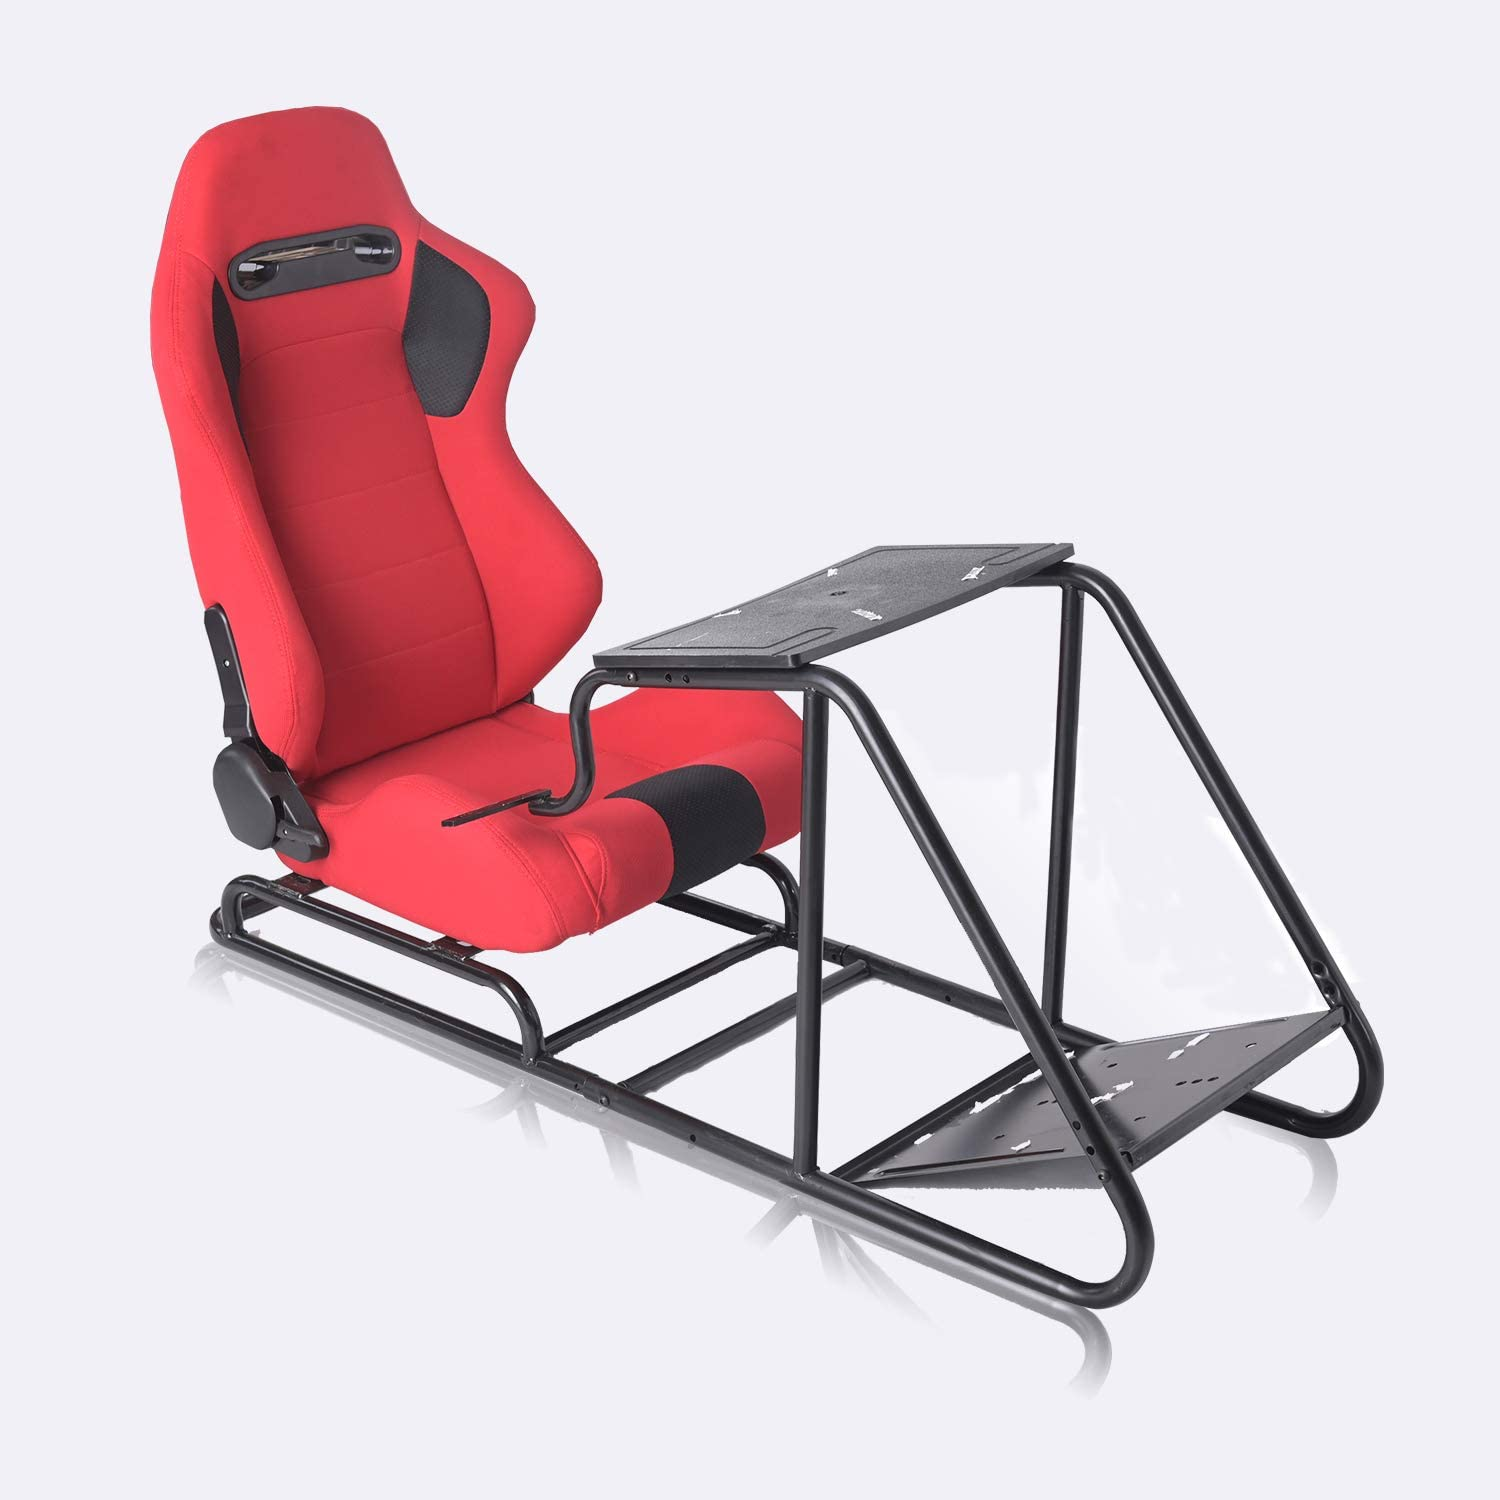 EiioX Racing Simulator with Fabric Seat Computer Gaming Chair, Red